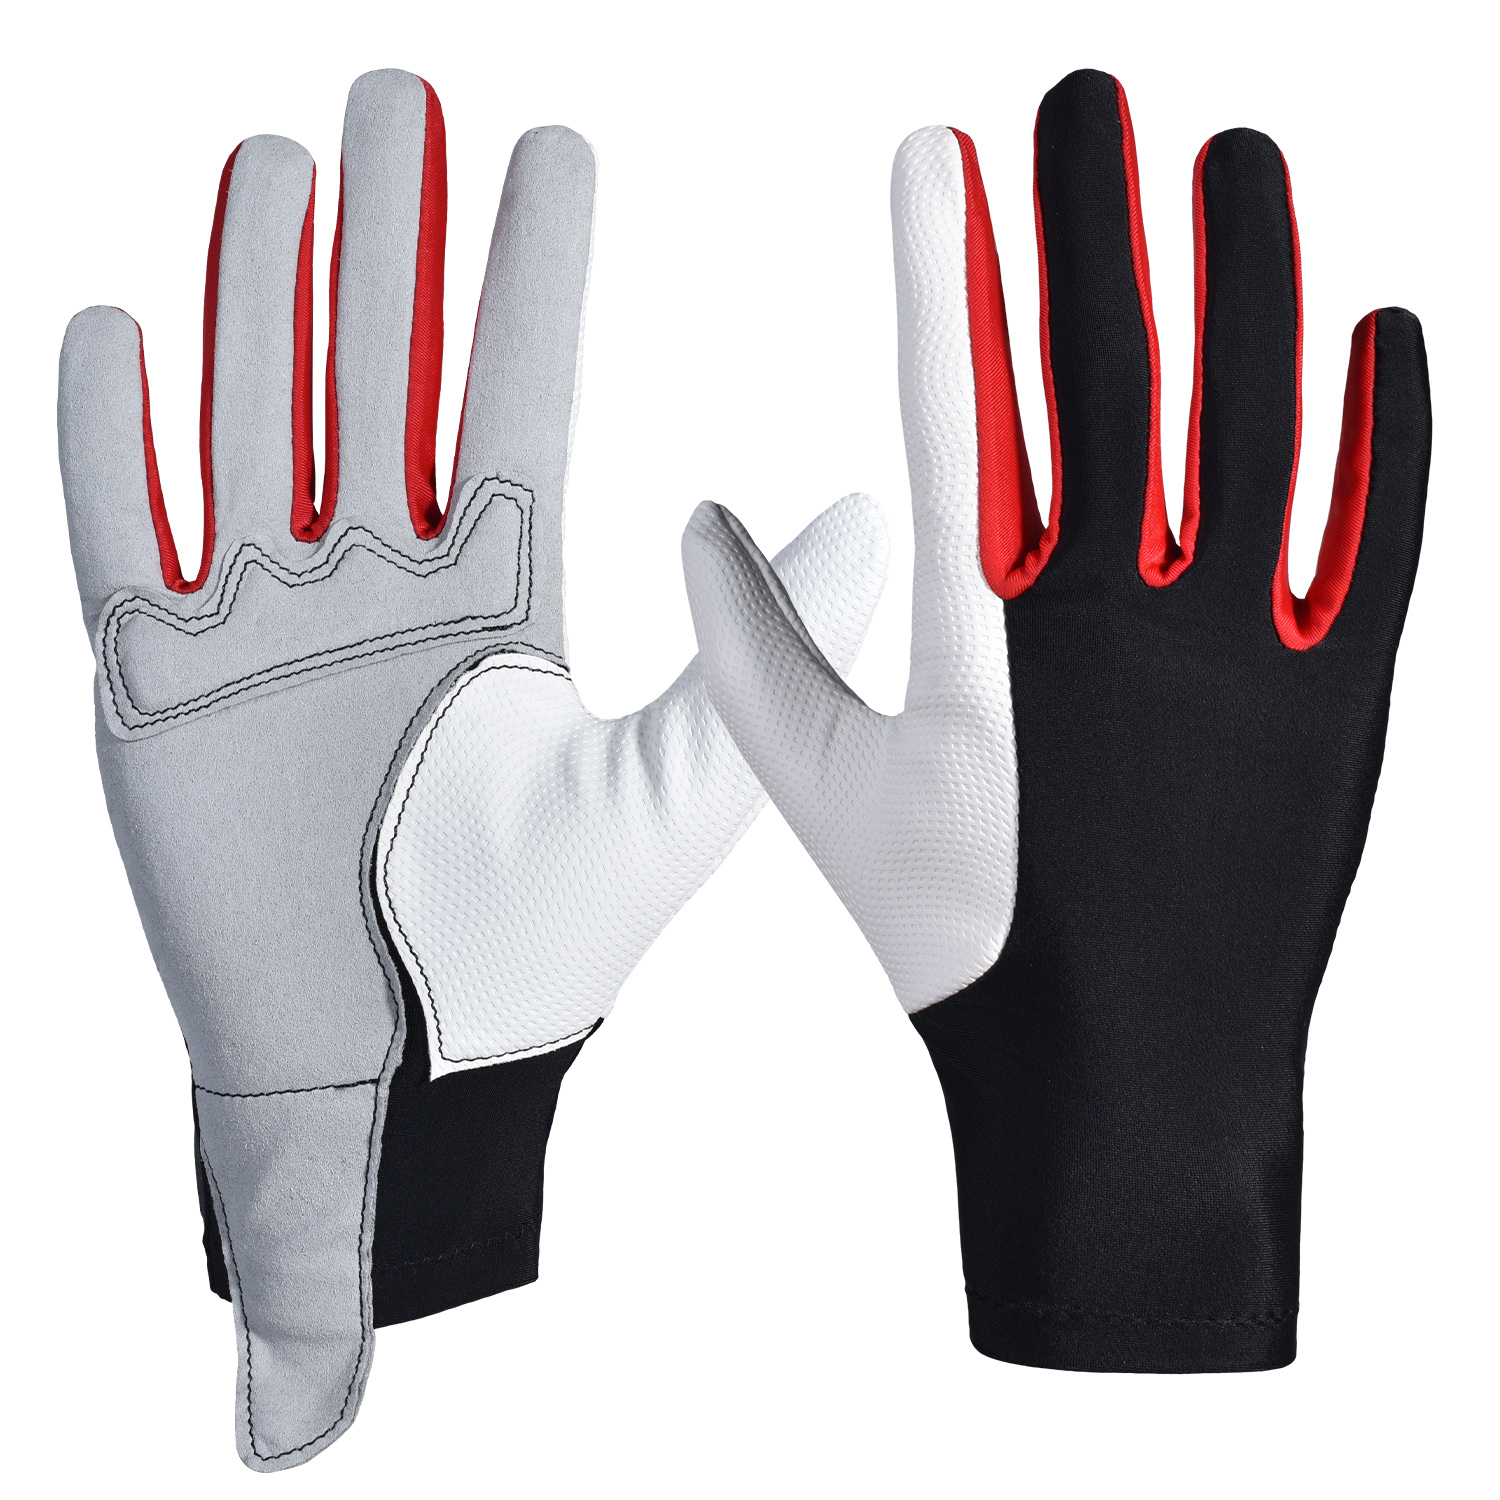 Professional Horse Riding Gloves Comfortable Men Women Equestrian Horseback Riding Gloves For Competition Trail Riding Training